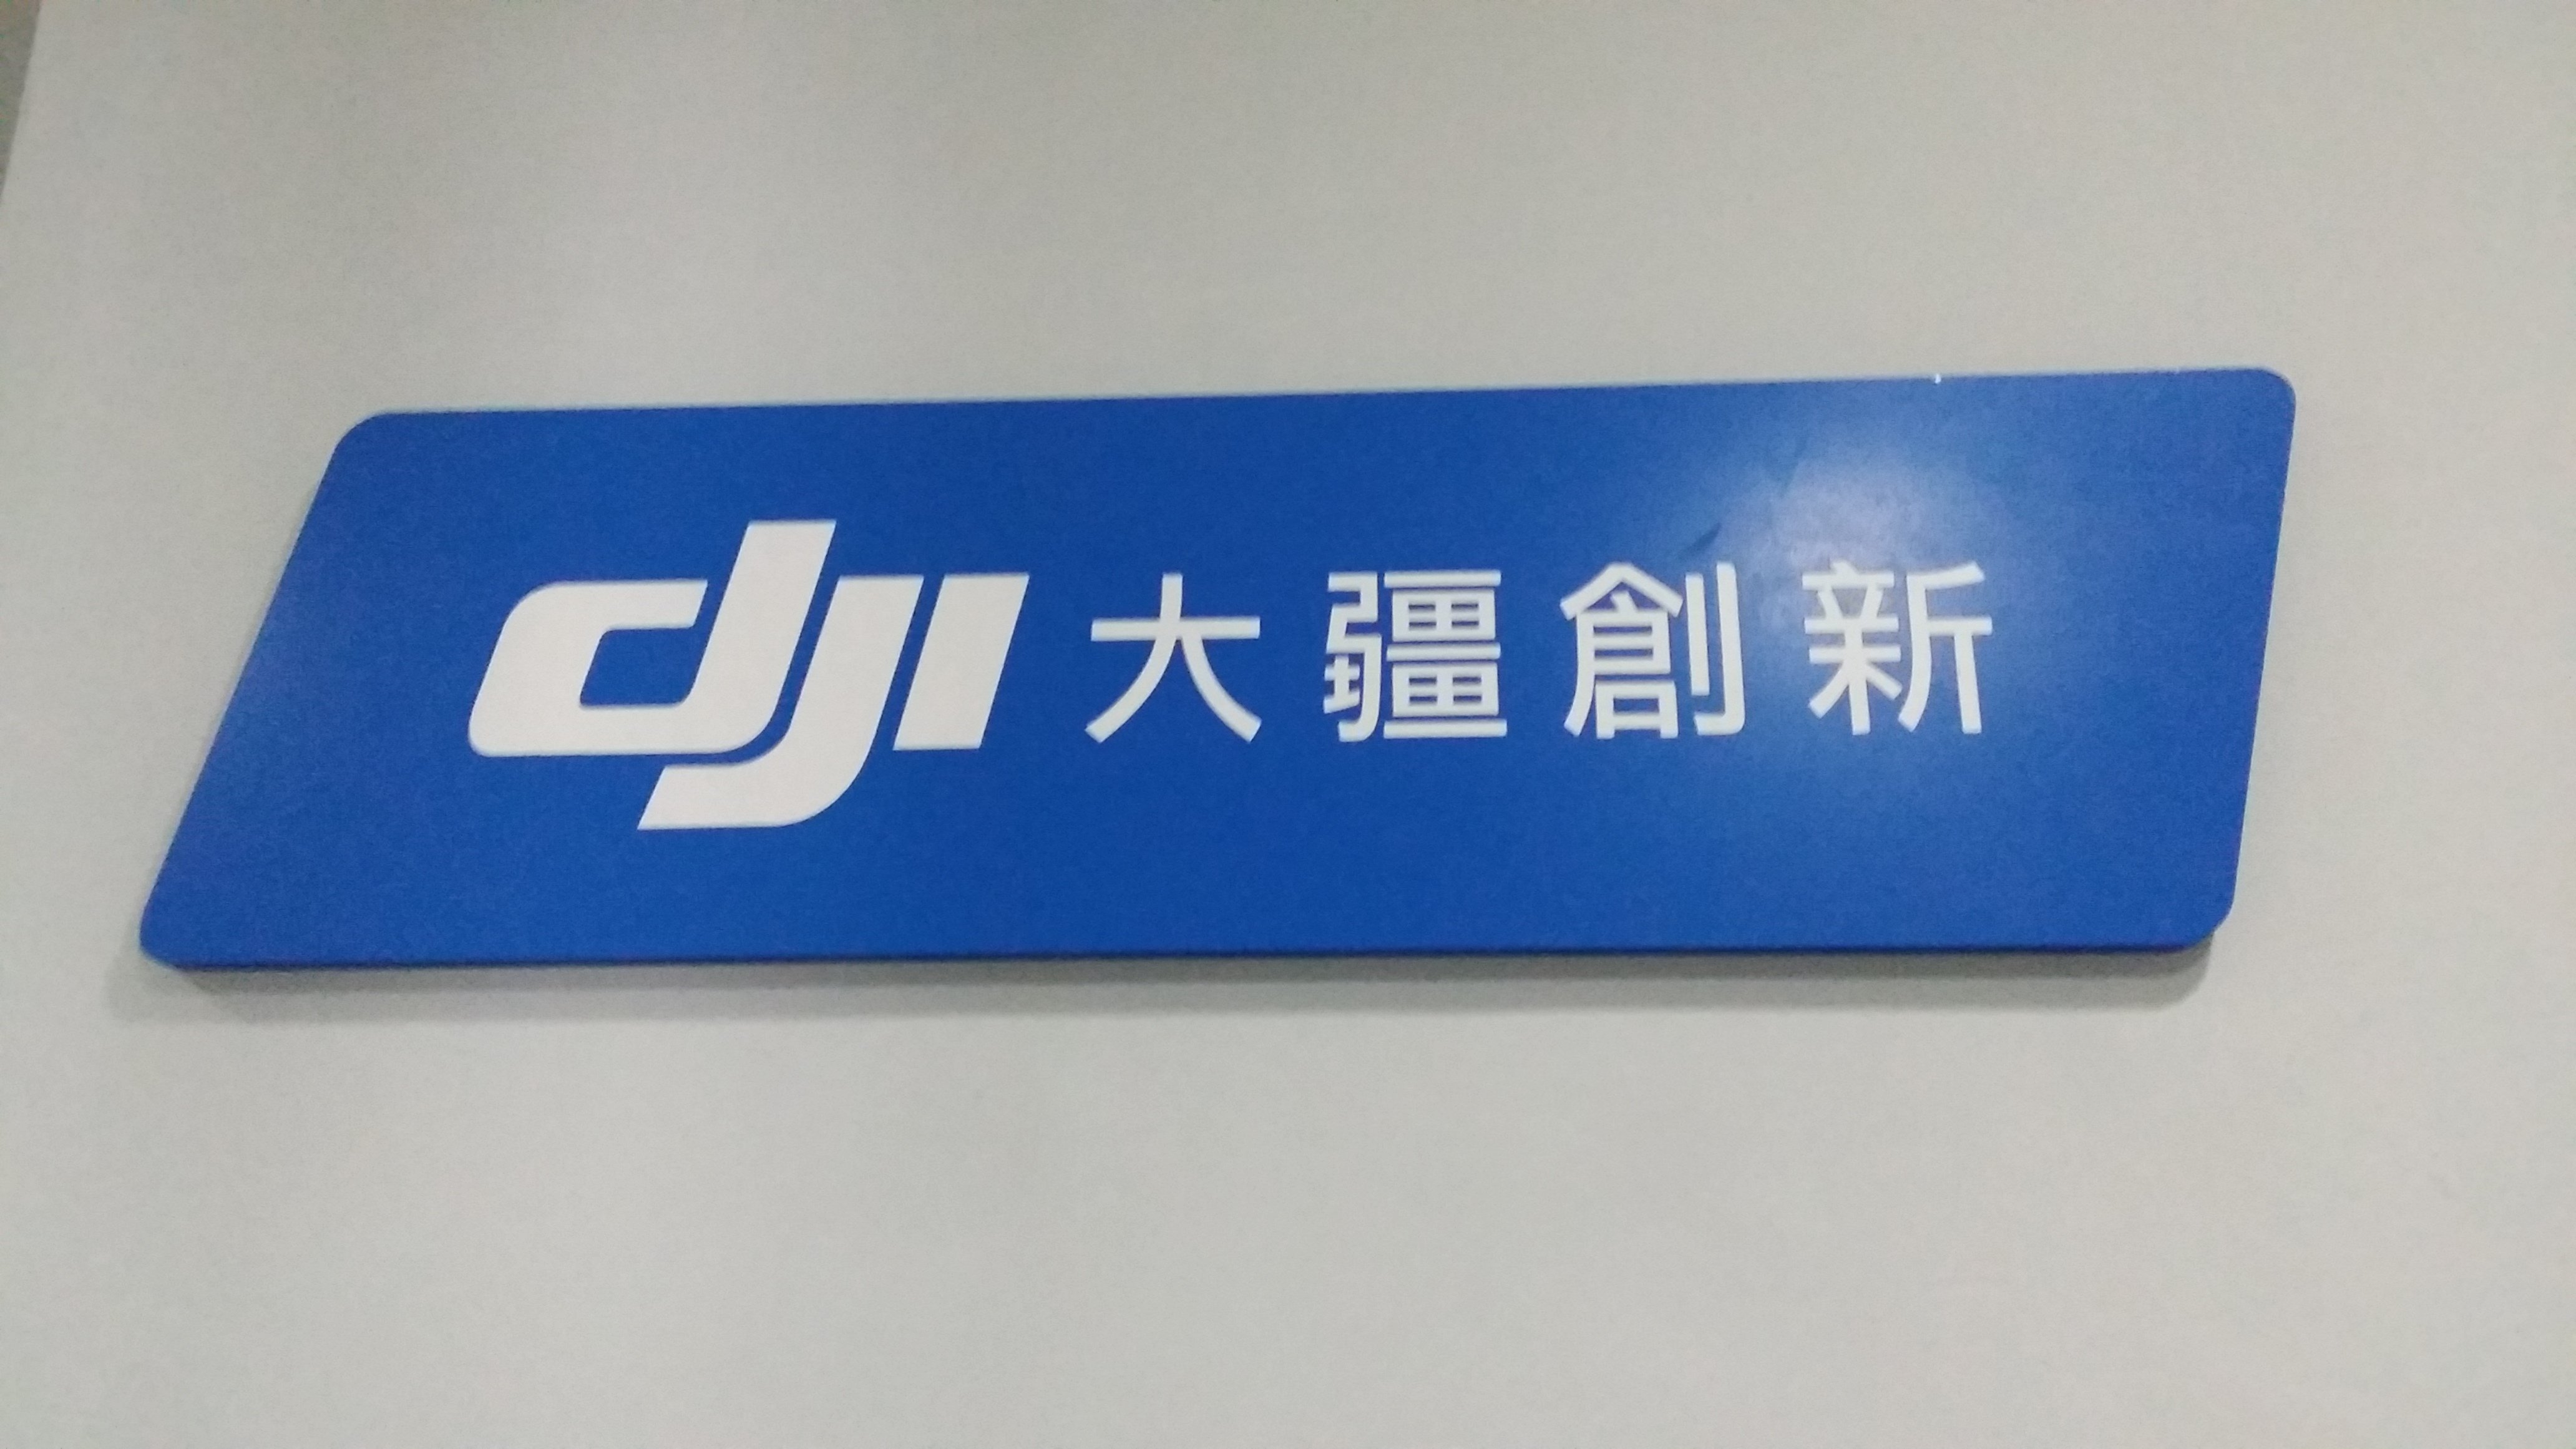 DJI Sign in Hong Kong University, Shenzhen